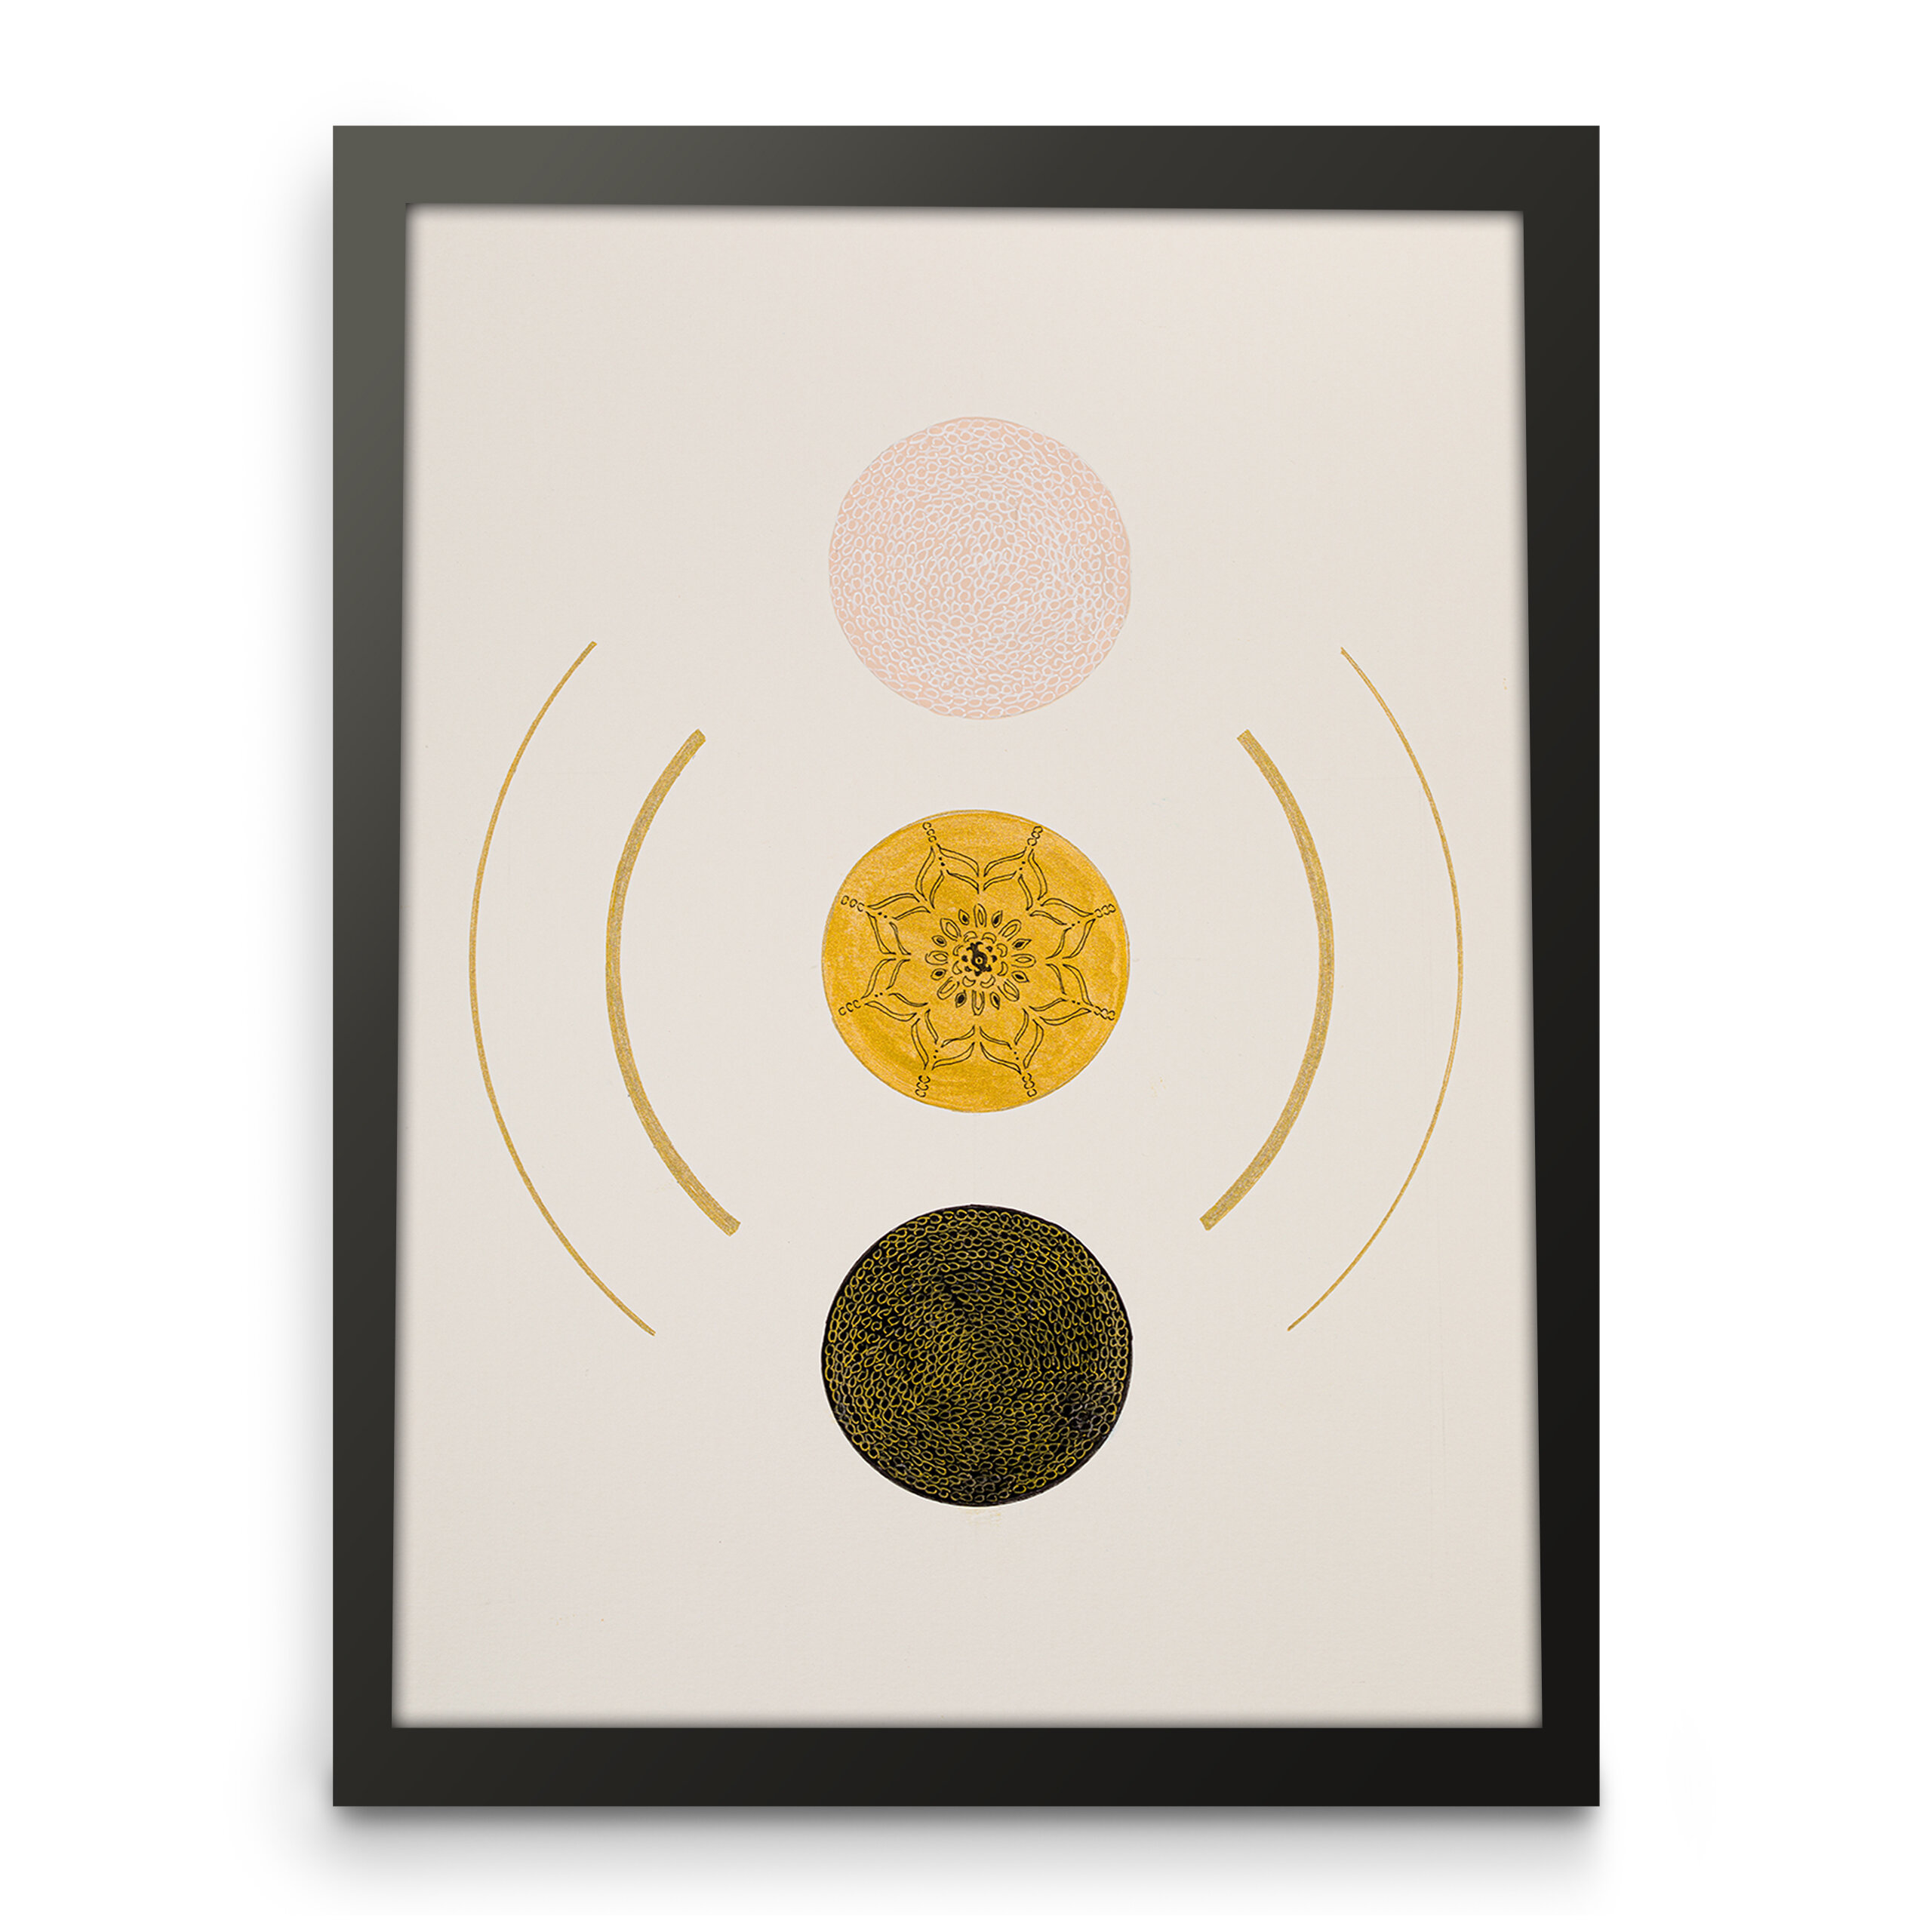 3 vertical circle orbs, pink, gold and black, Framed front view